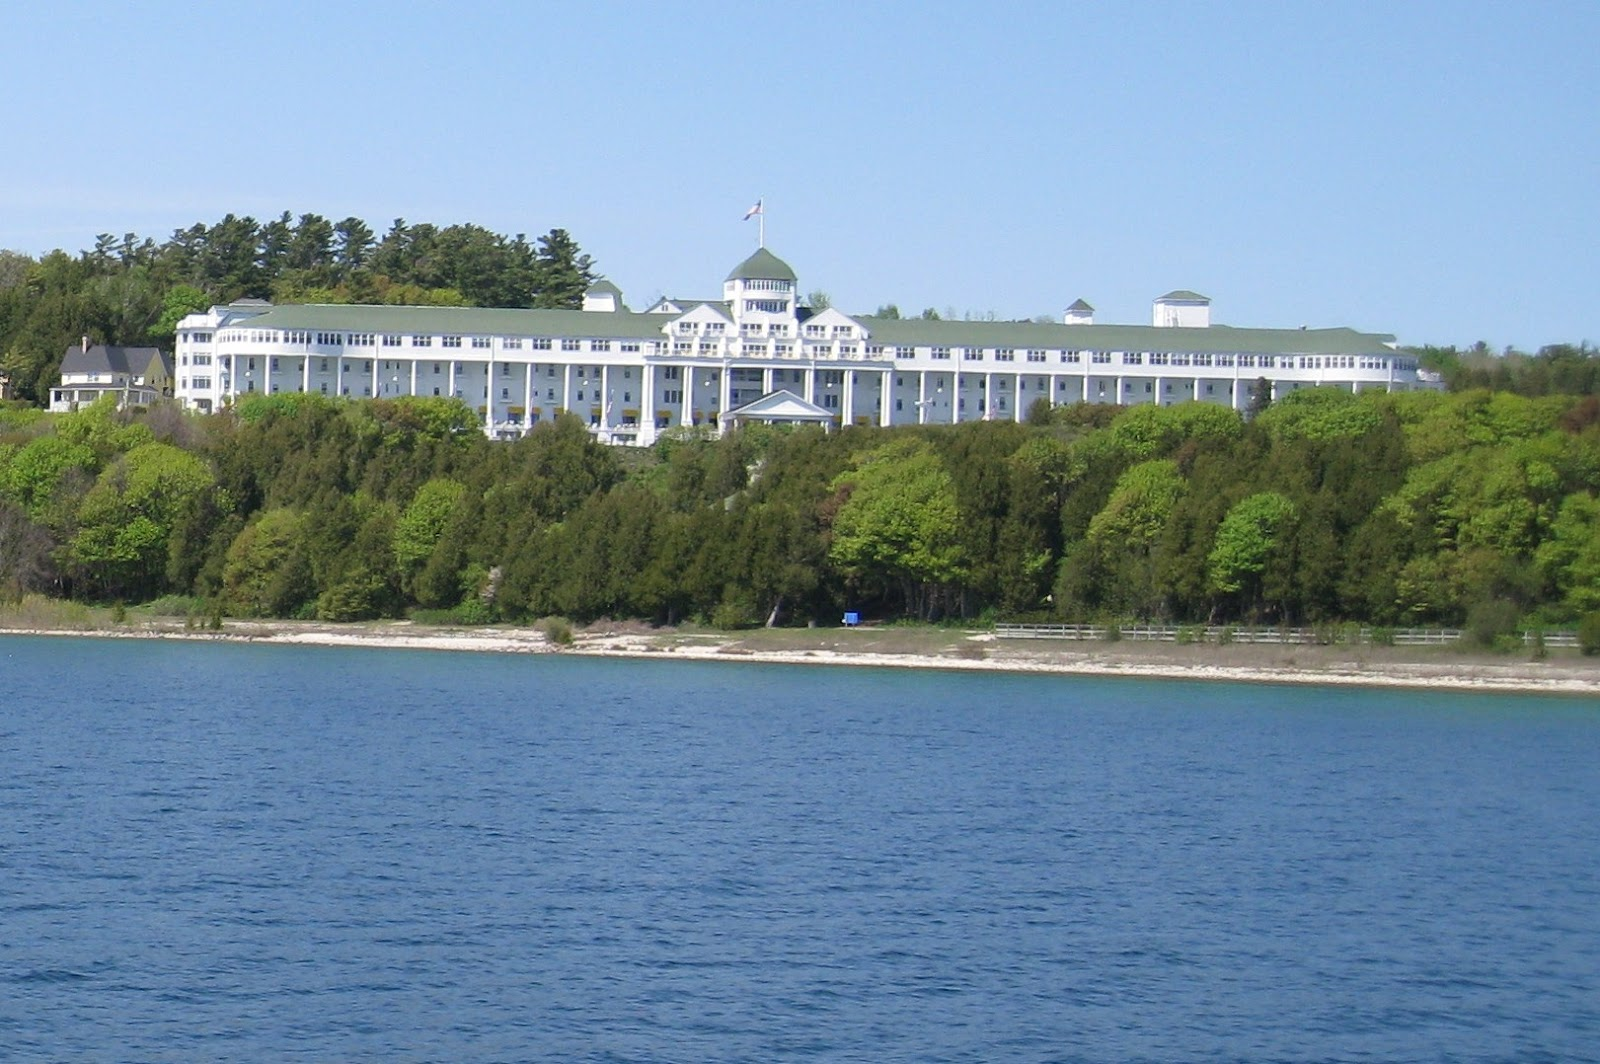 Download this Mackinac Island picture